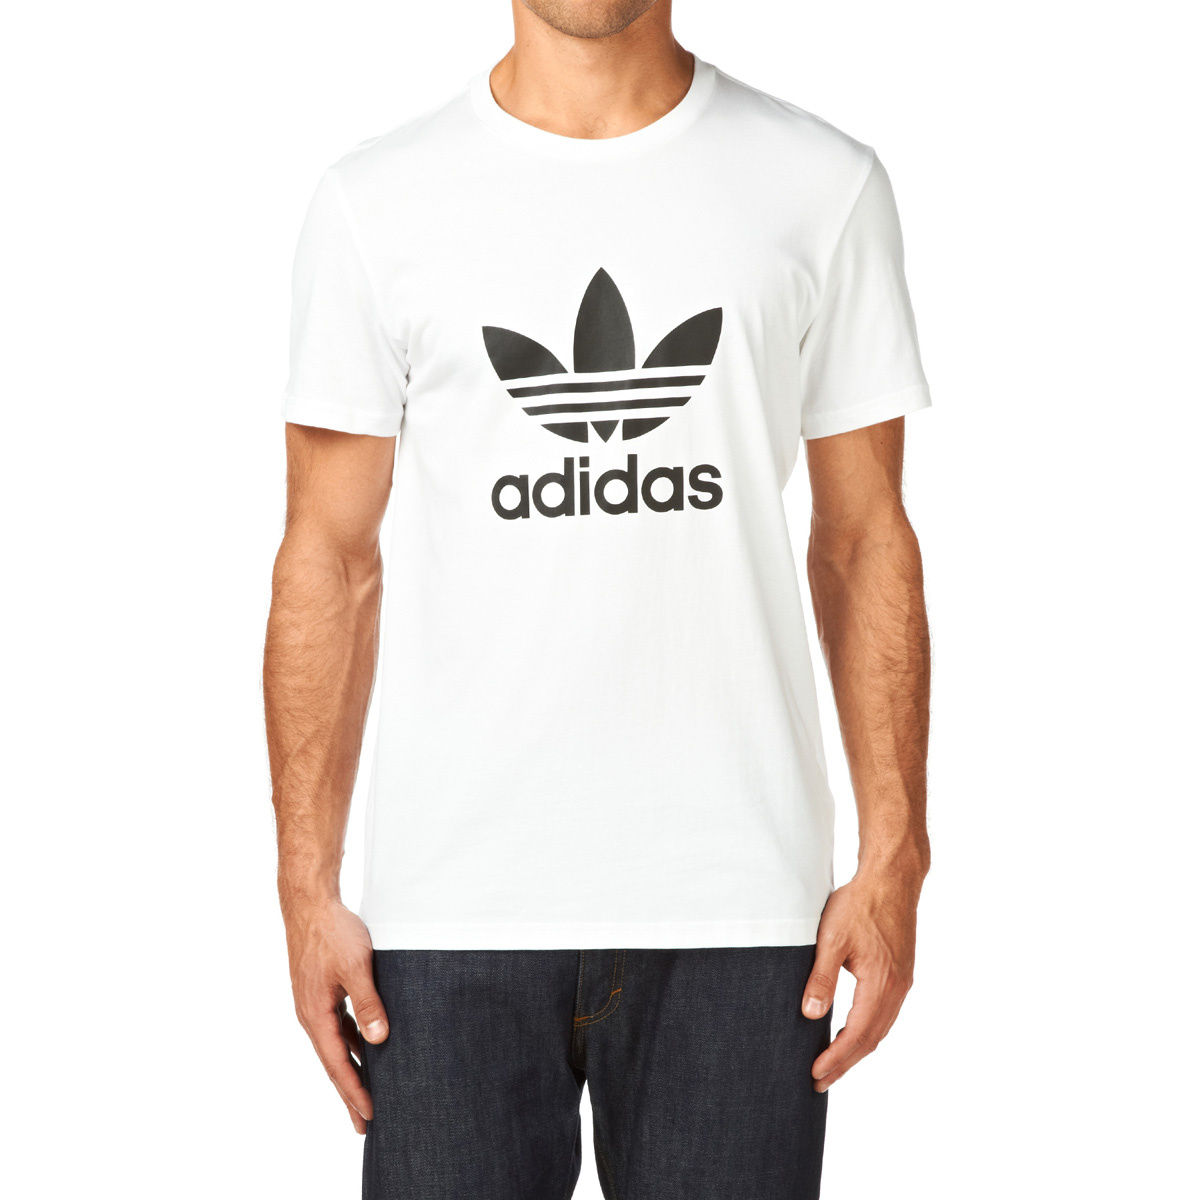 timeless design 2bc7b 16d40 adidas originals Adi Trefoil T-Shirt - White Black